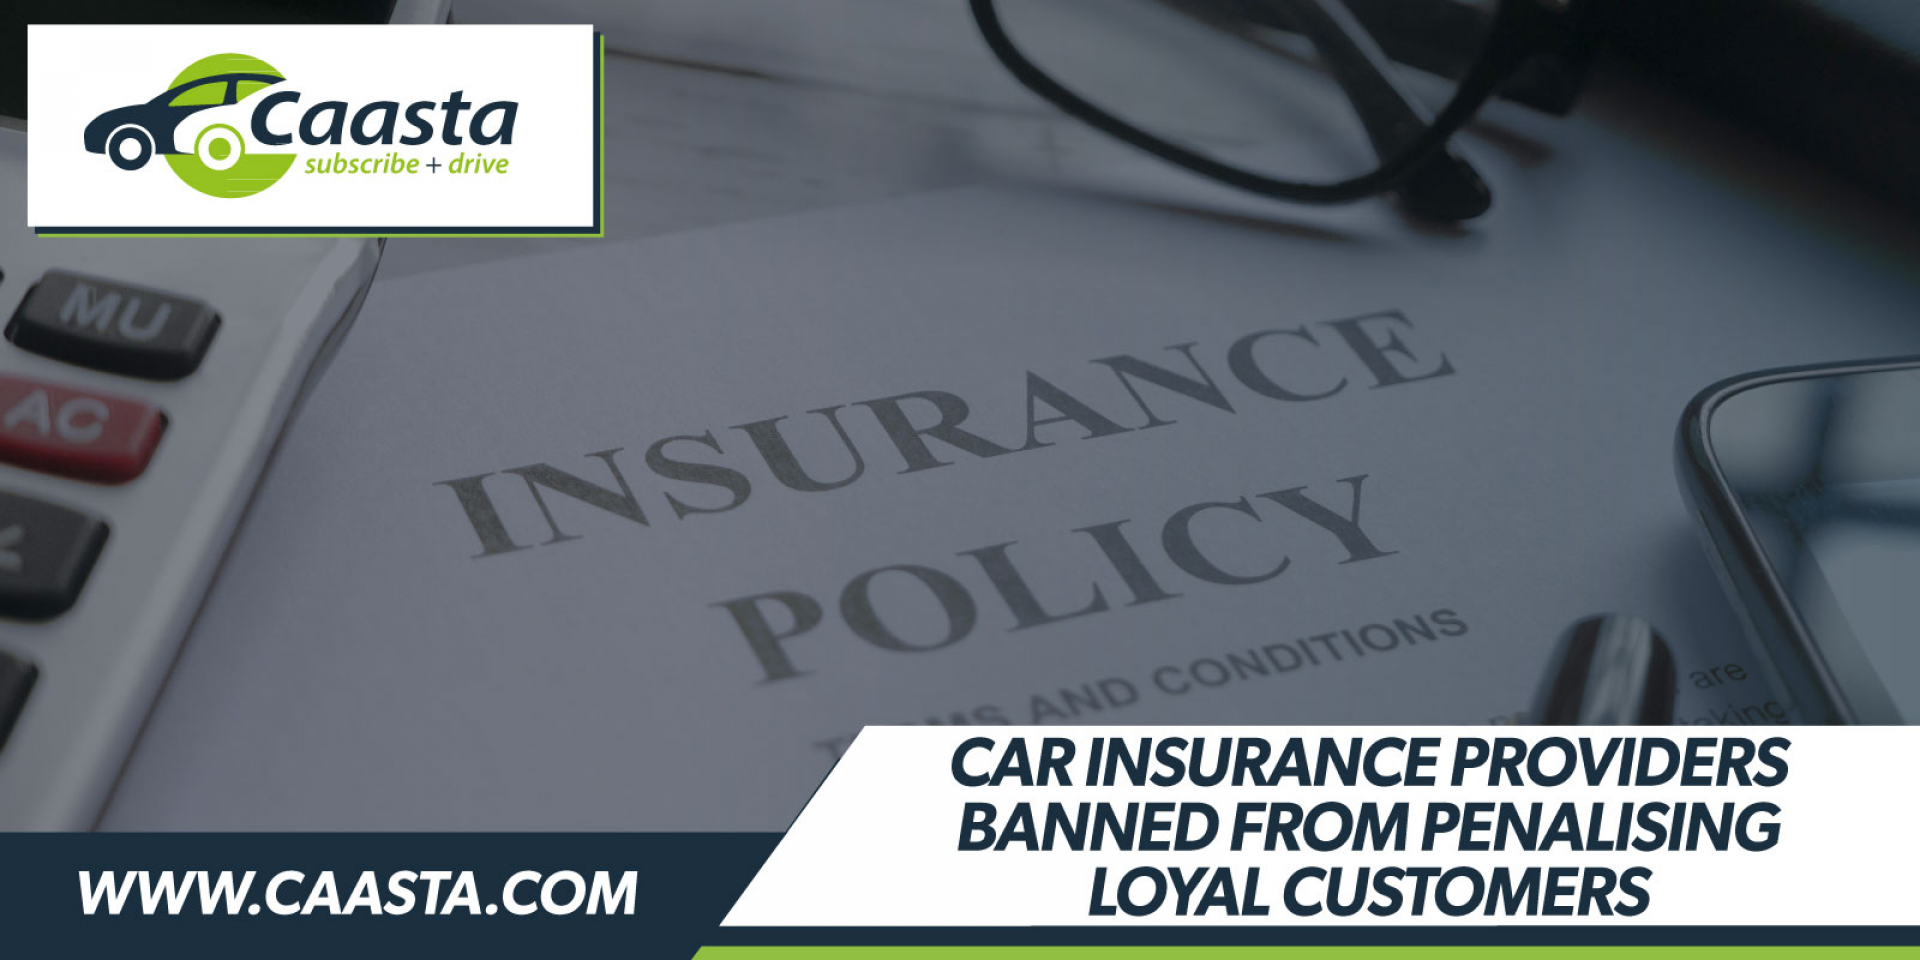 Car insurance providers to be banned from penalising loyal customers